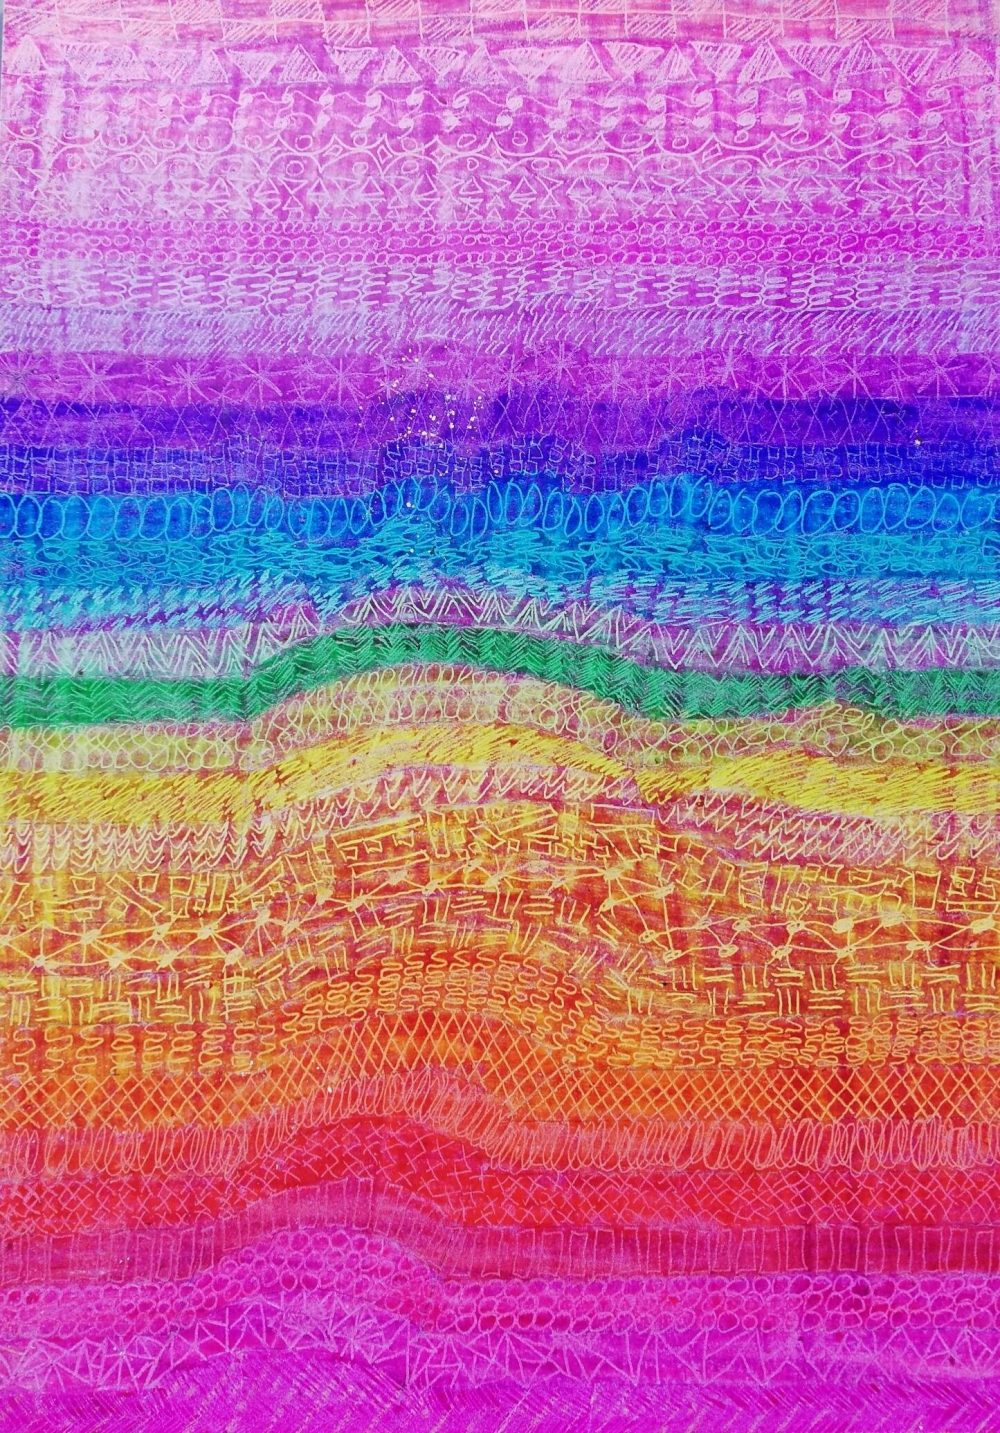 "Rainbow 3D hand, crayon, 8 x 11"" by u/TheRainbowFairy"